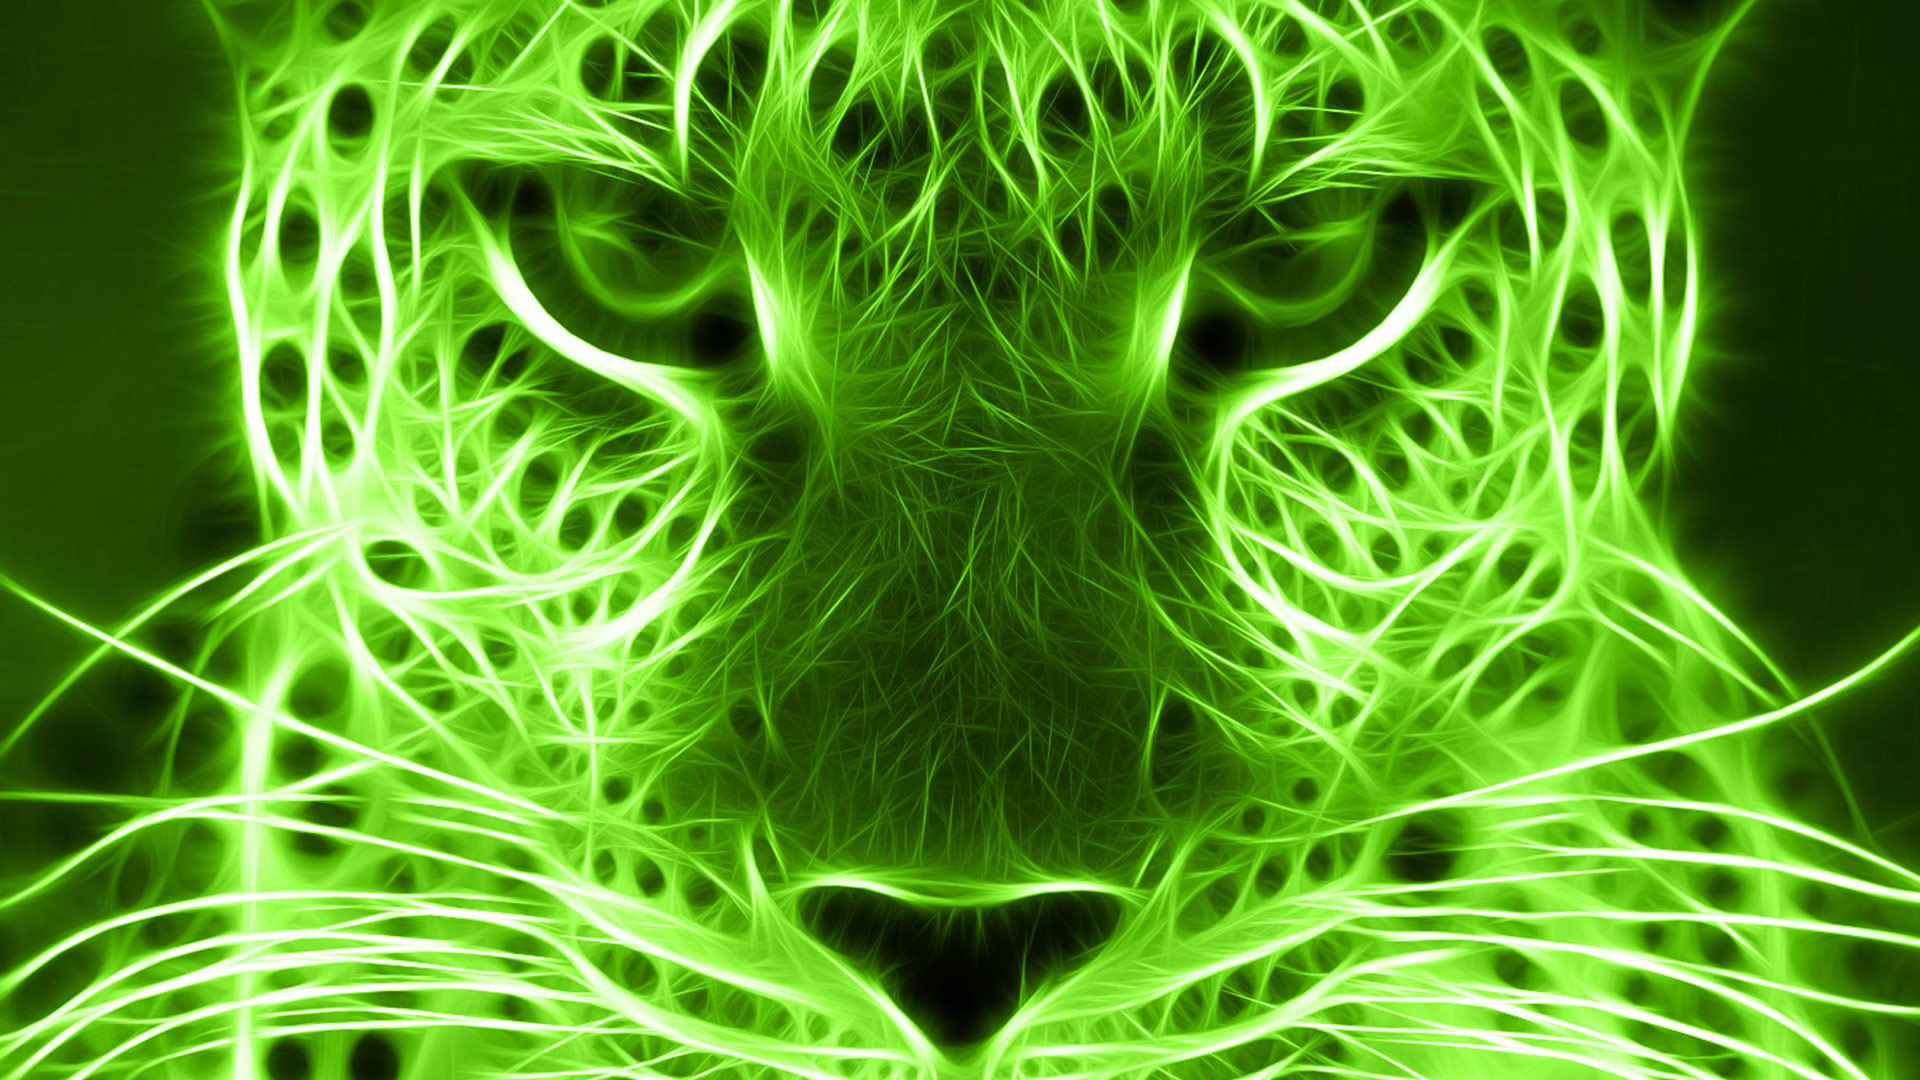 1920x1080 hd pics photos green animals digital art neon desktop background wallpaper